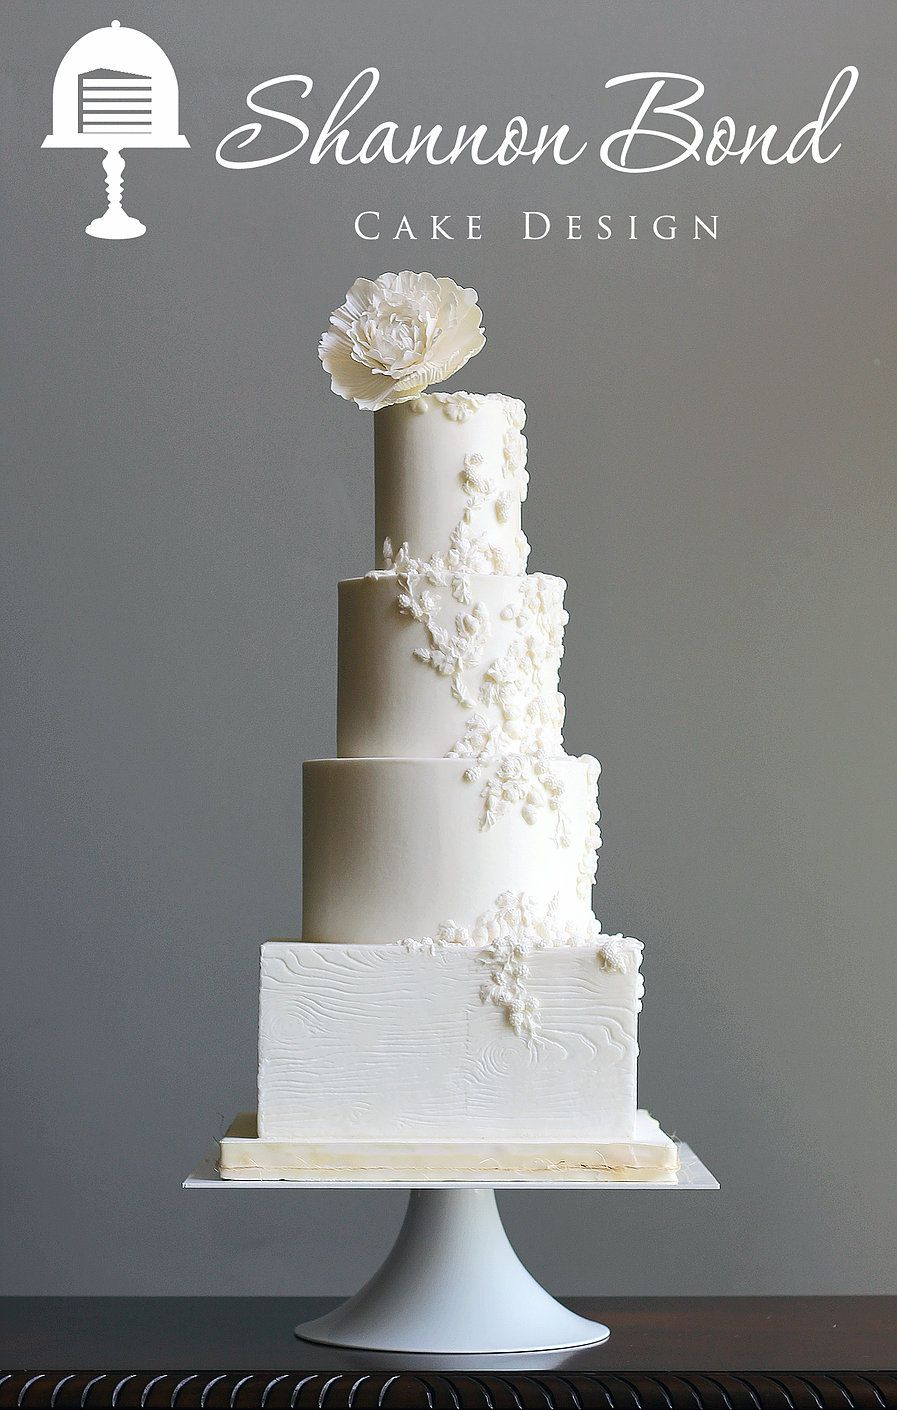 of our favorite wedding cakes from shannon bond cake design cake